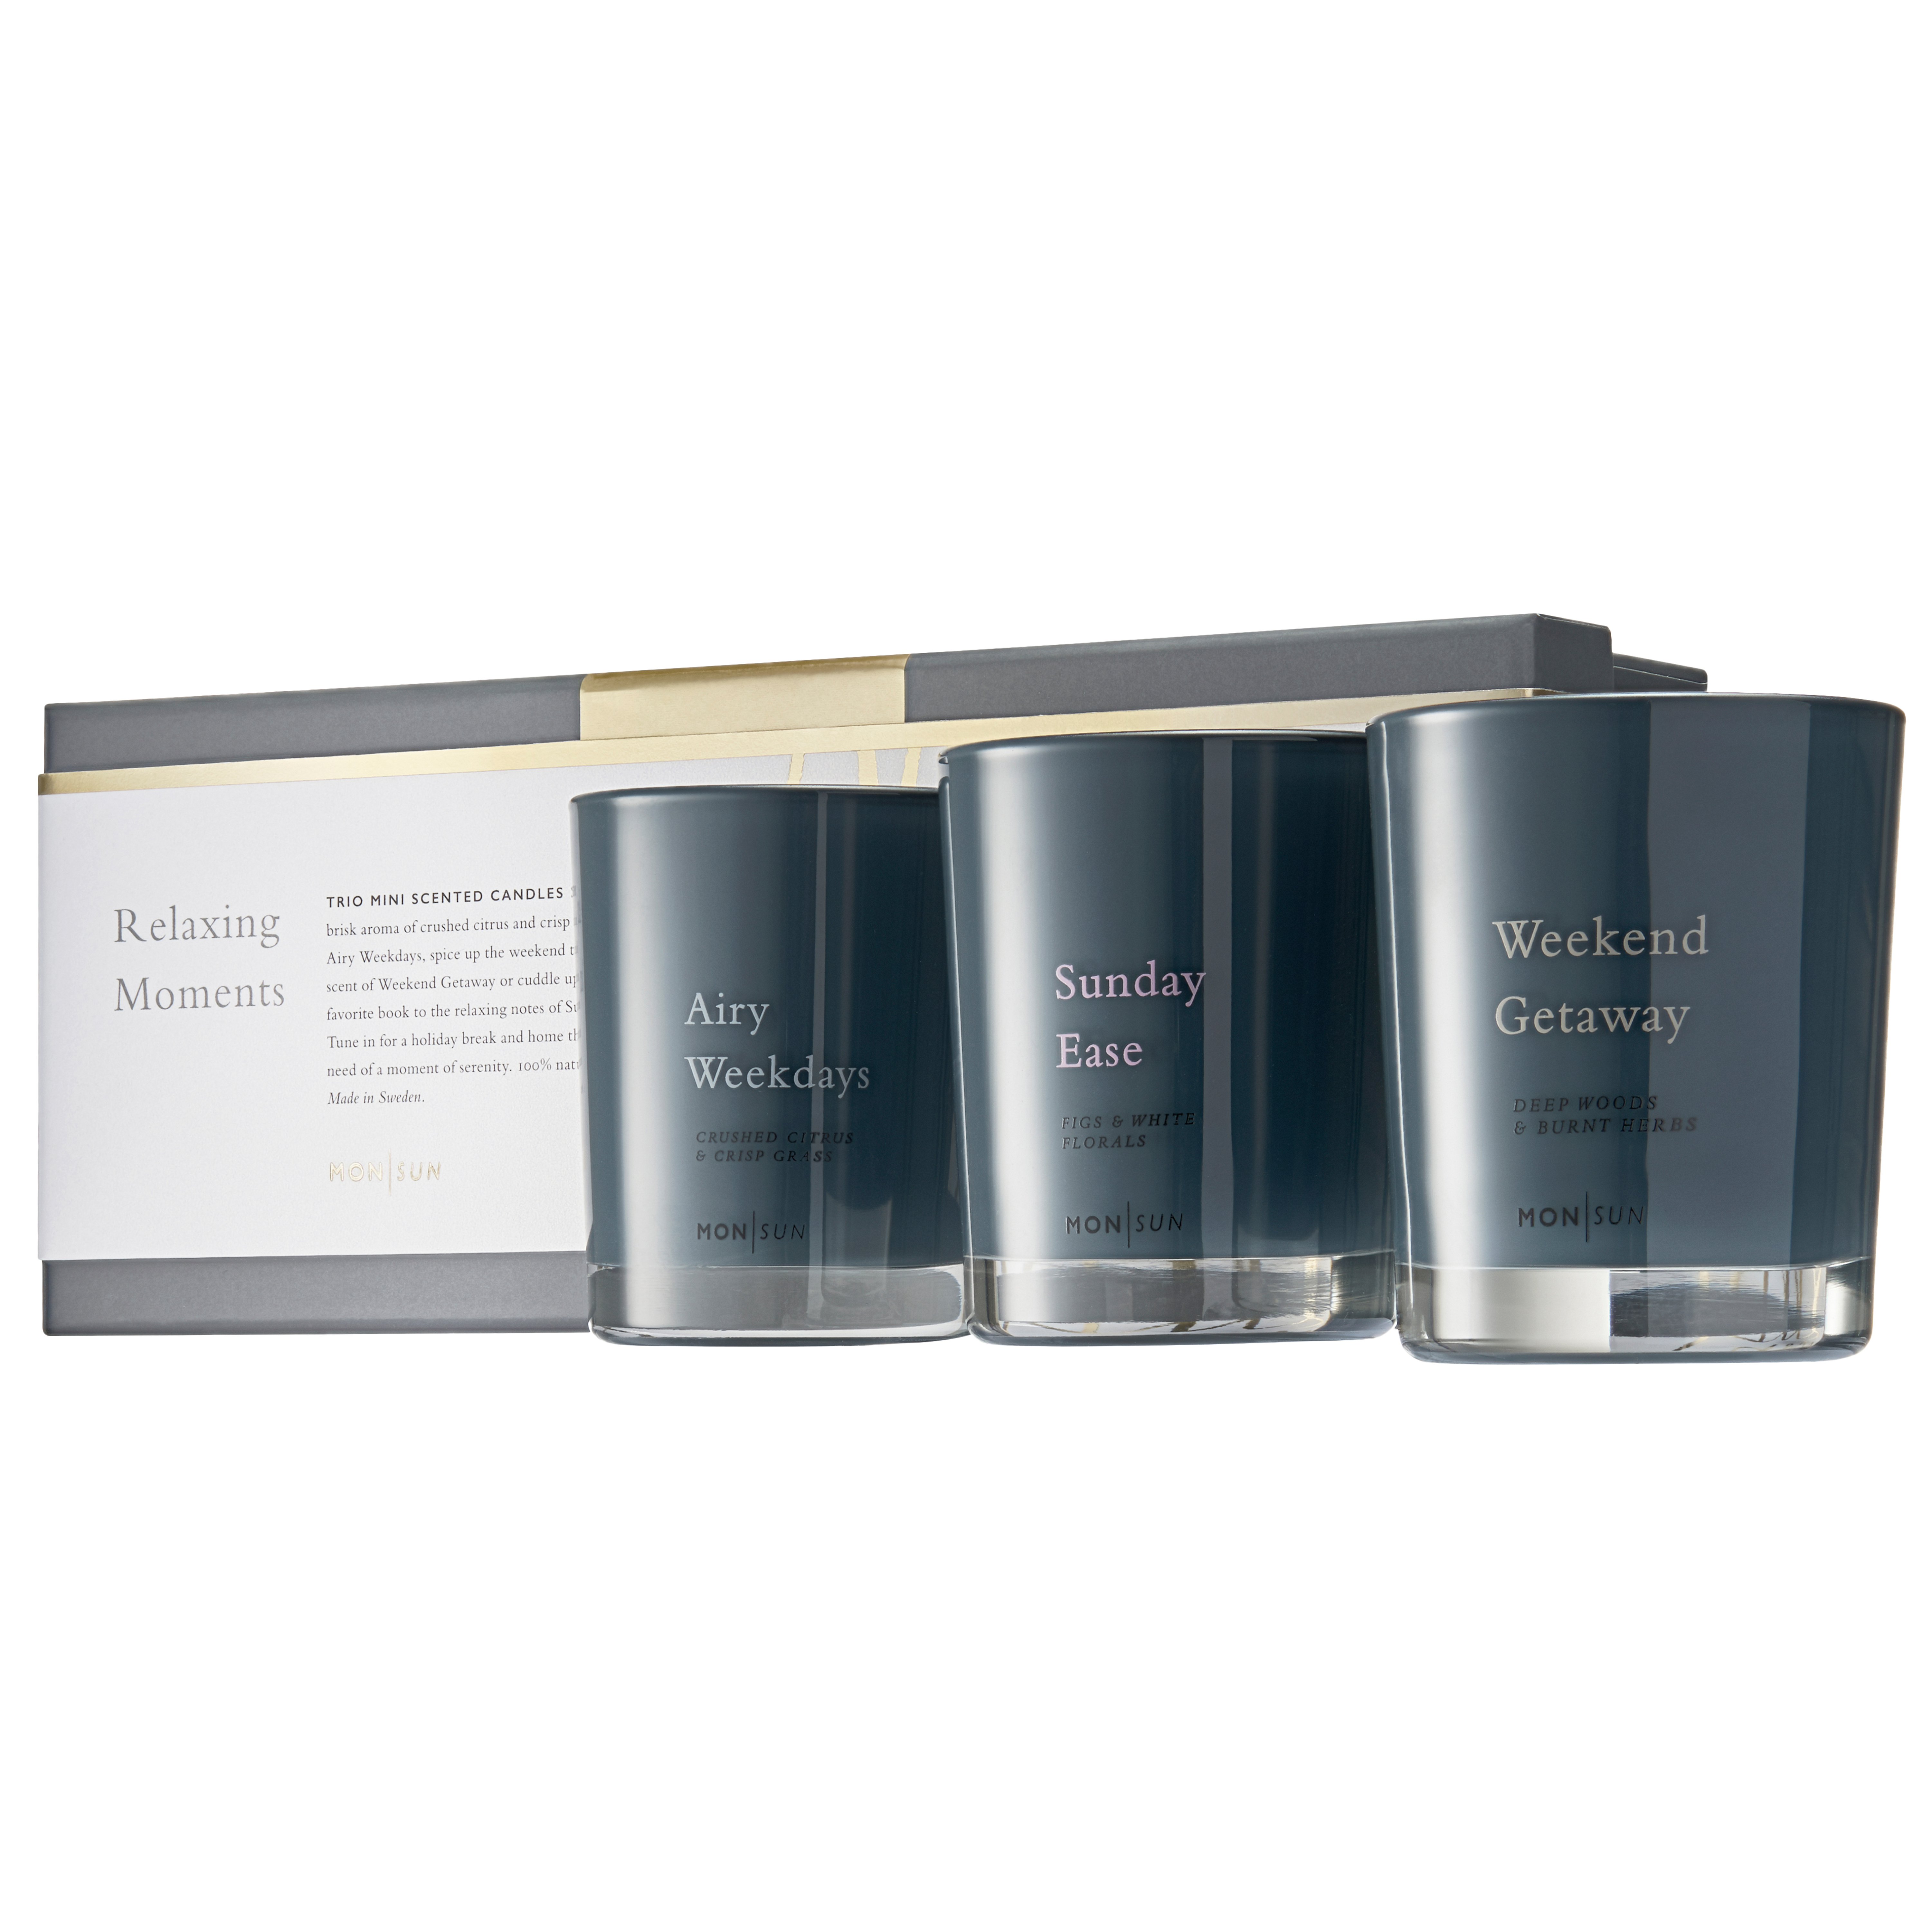 Relaxing Moments Trio Scented Candles Giftbox